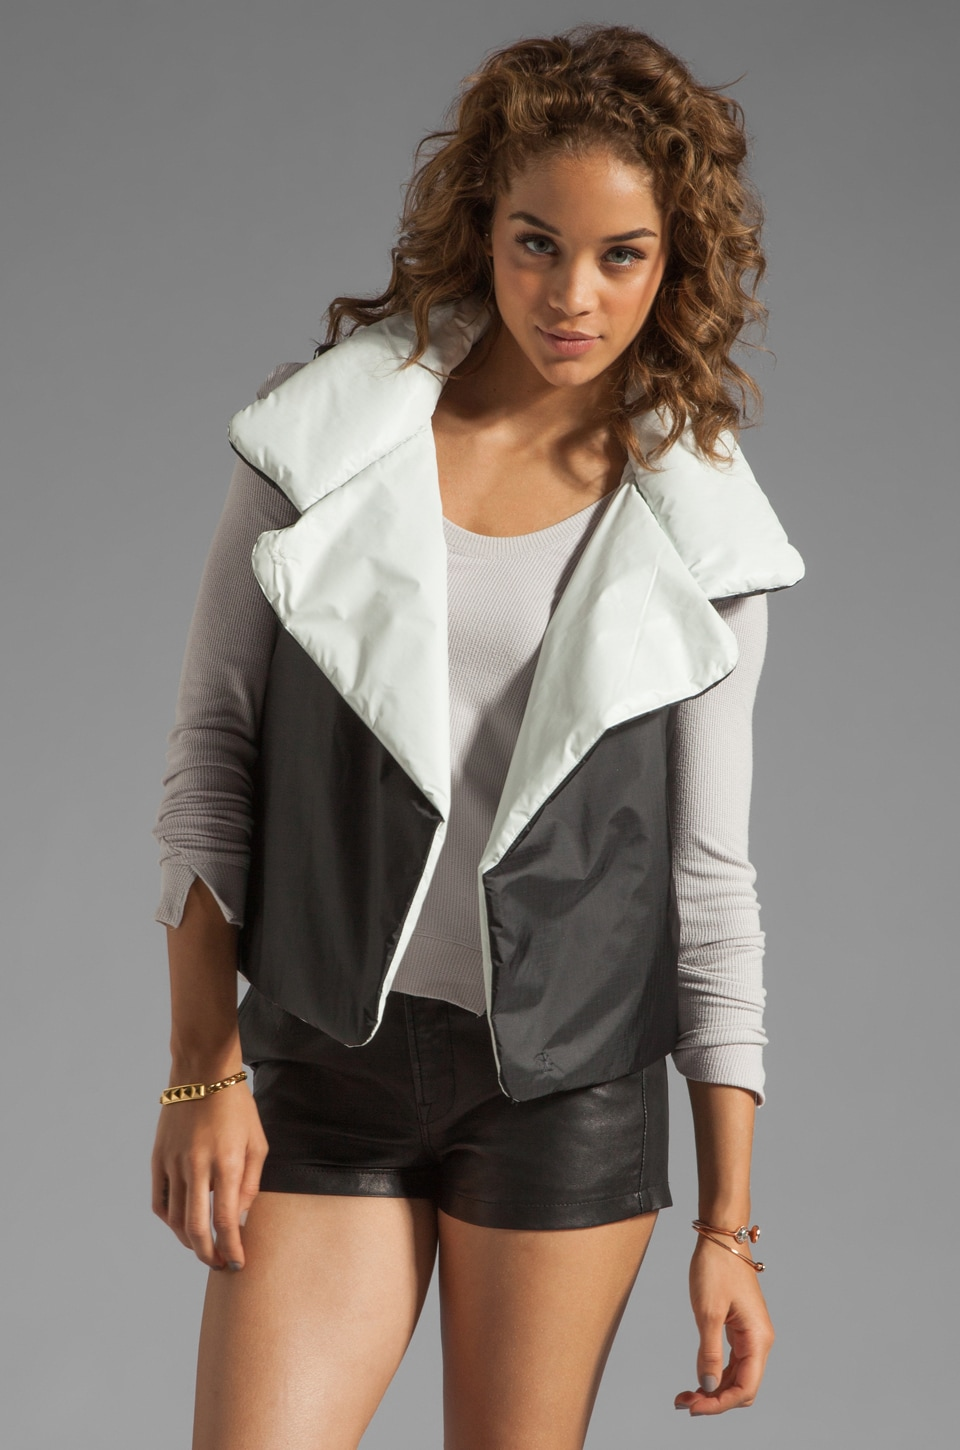 Norma Kamali Nylon Sleeping Vest Reversible Coat in Black/White